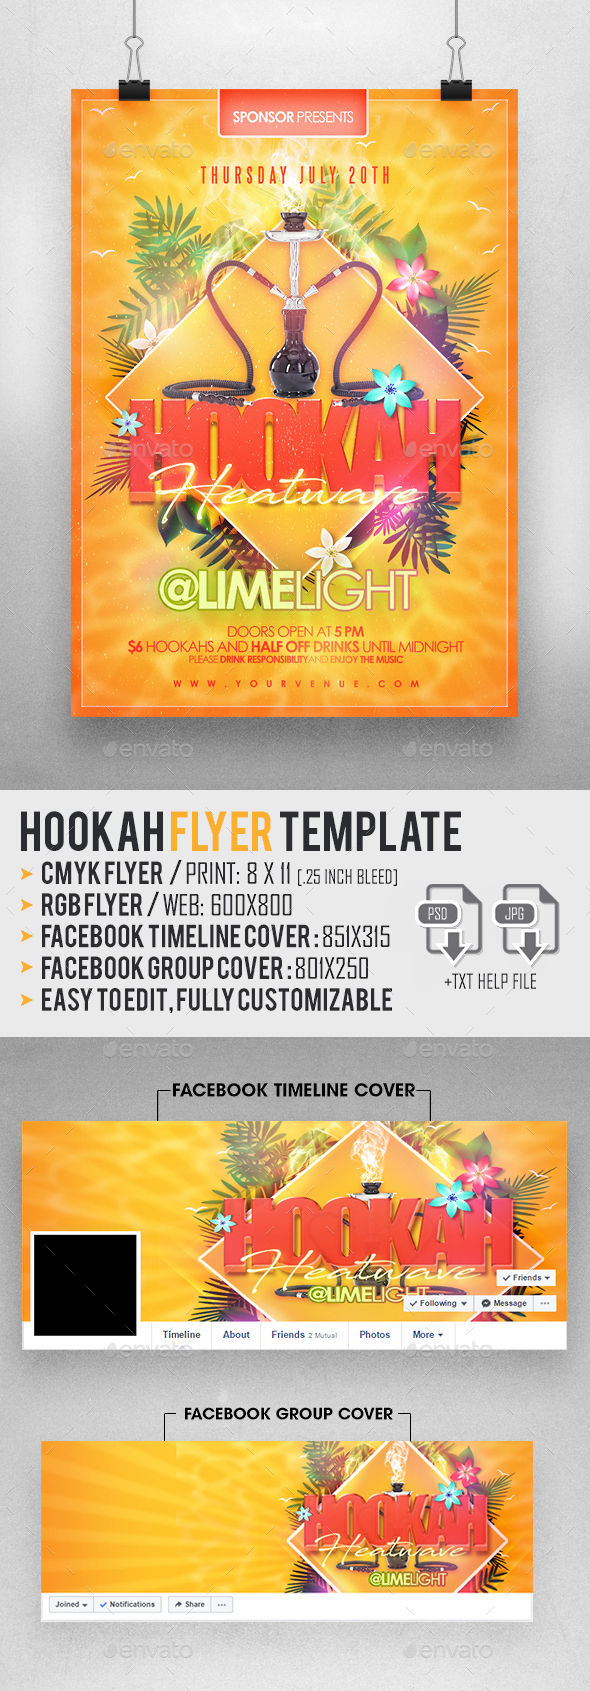 Hookah Flyer Template - Clubs & Parties Events